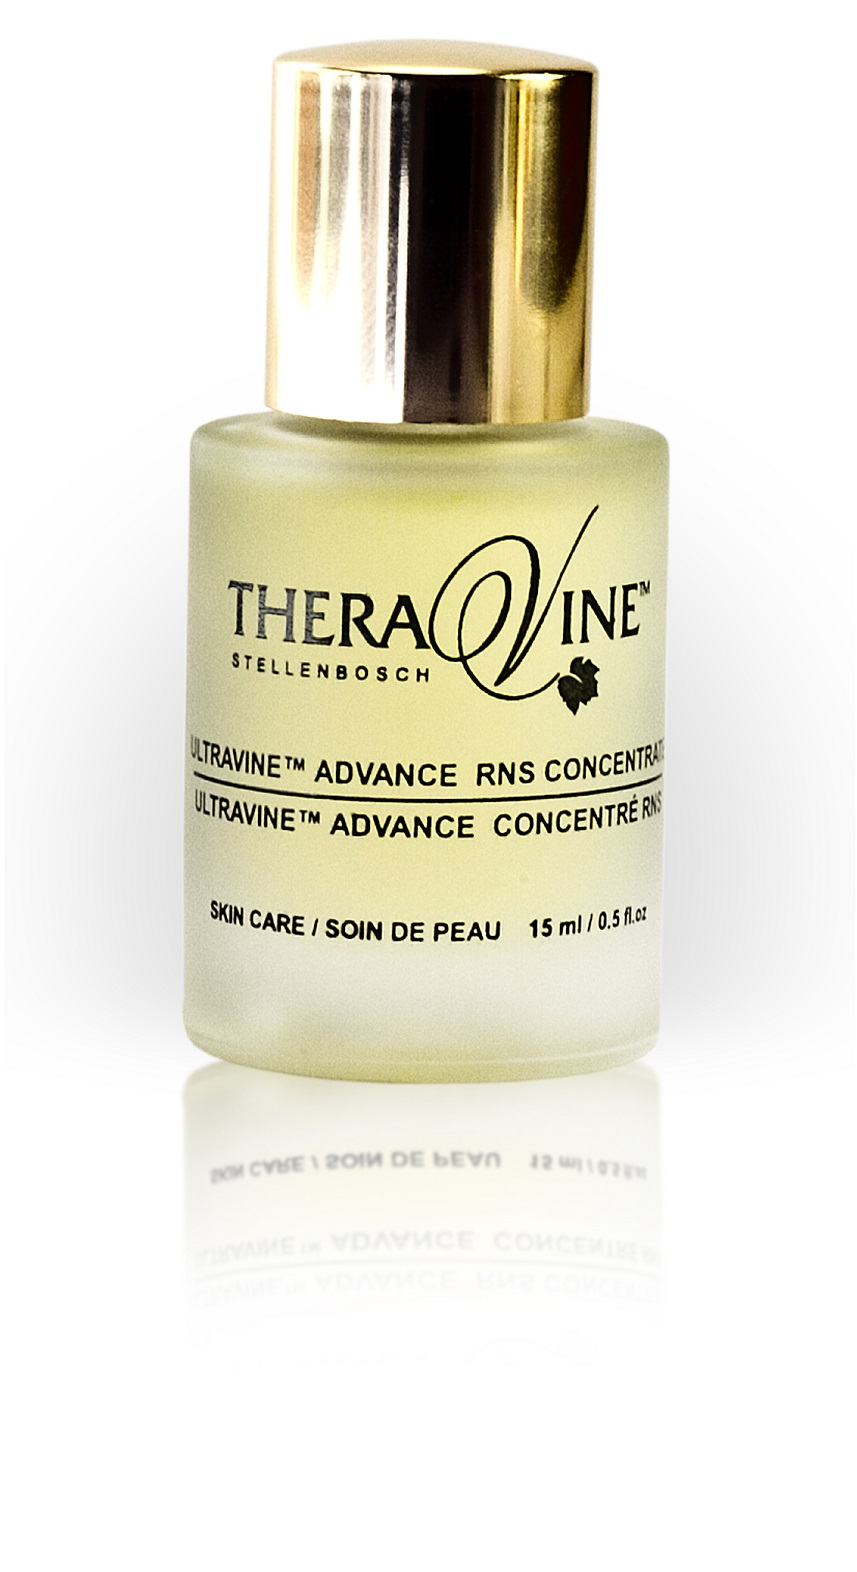 UltraVine Advance -RNS Concentrate